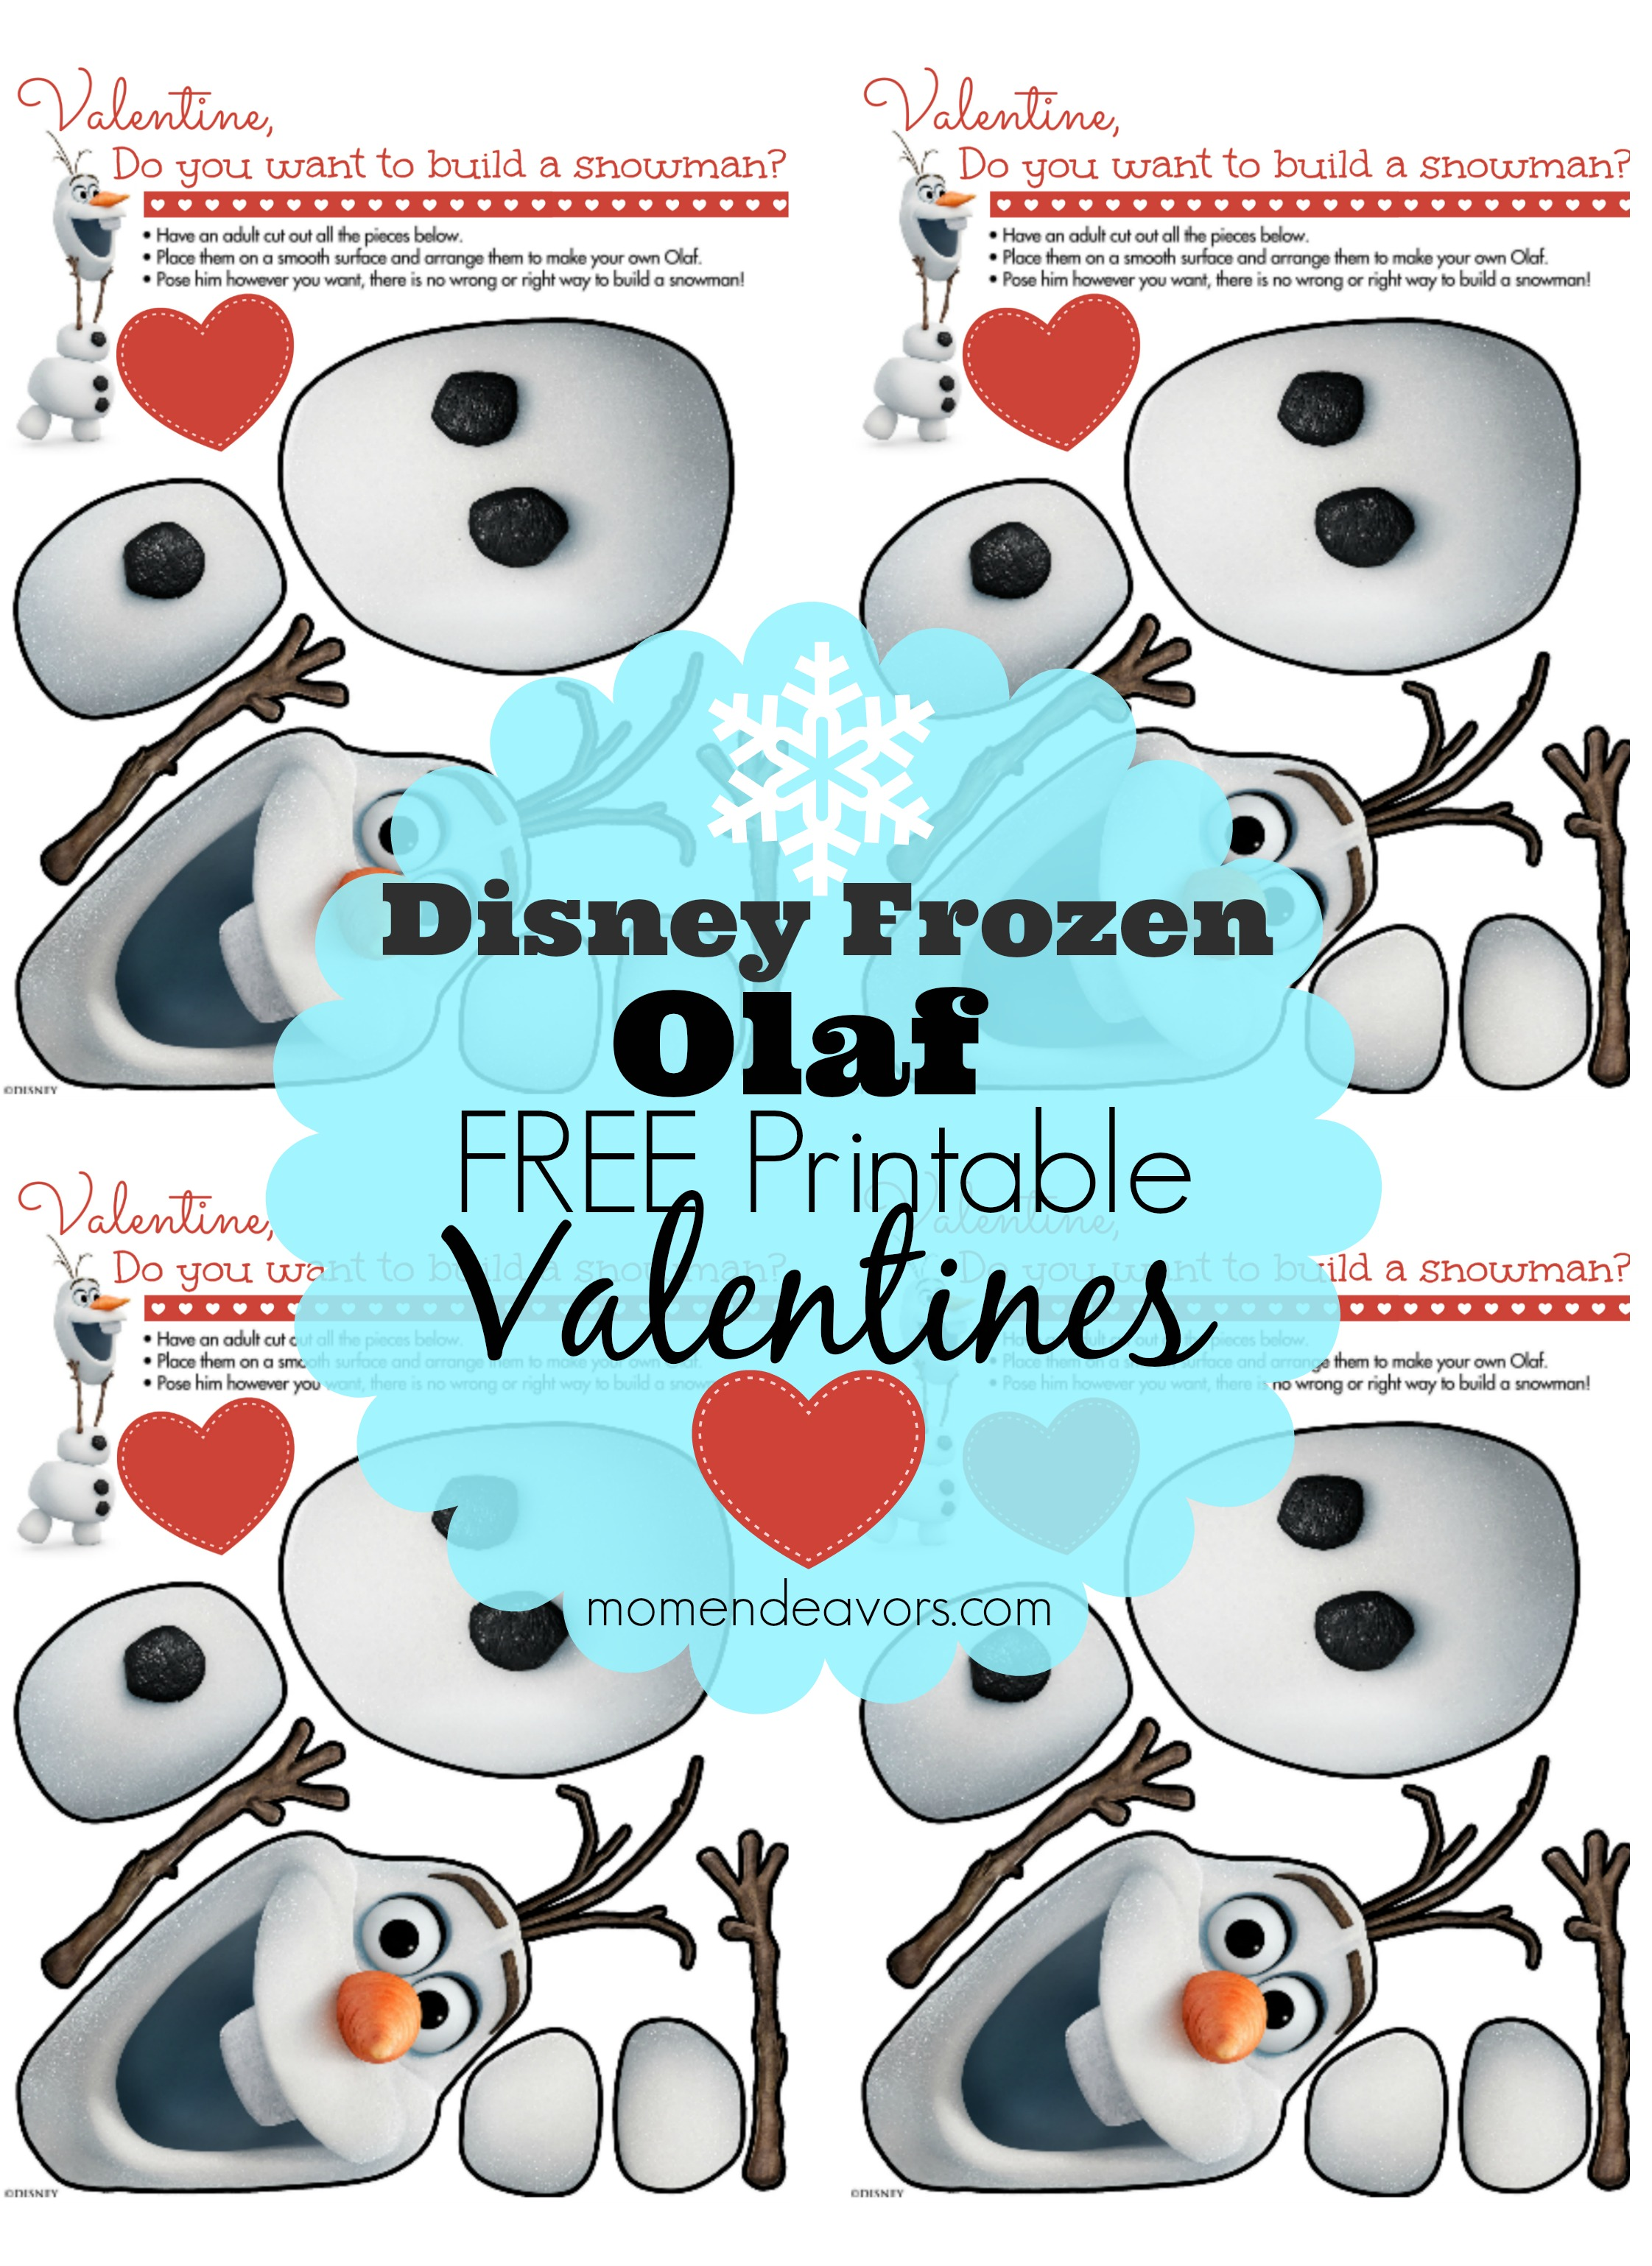 image about Olaf Printable Cut Out identified as Disney FROZEN No cost Printable Olaf Valentines